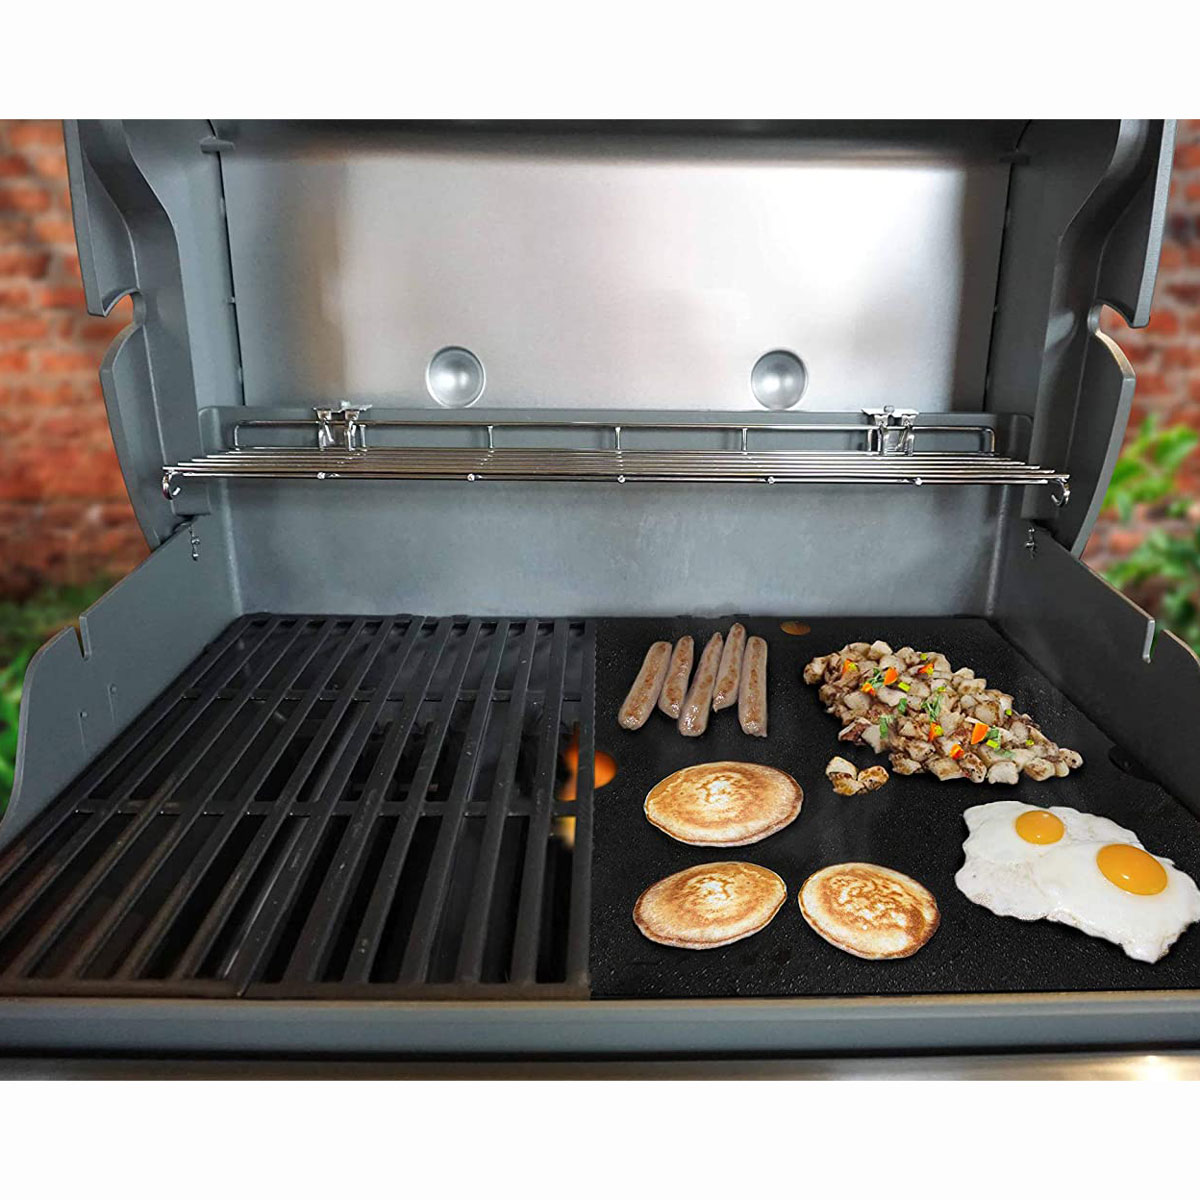 This grill insert comes in every size so you can turn half of your standard grill into a griddle-style surface. The carbon steel is harder than cast iron and resists rust after seasoning.ARTEFLAME Replacement BBQ Grill Cooking Plancha Griddle, $40-$50 at amazon.com